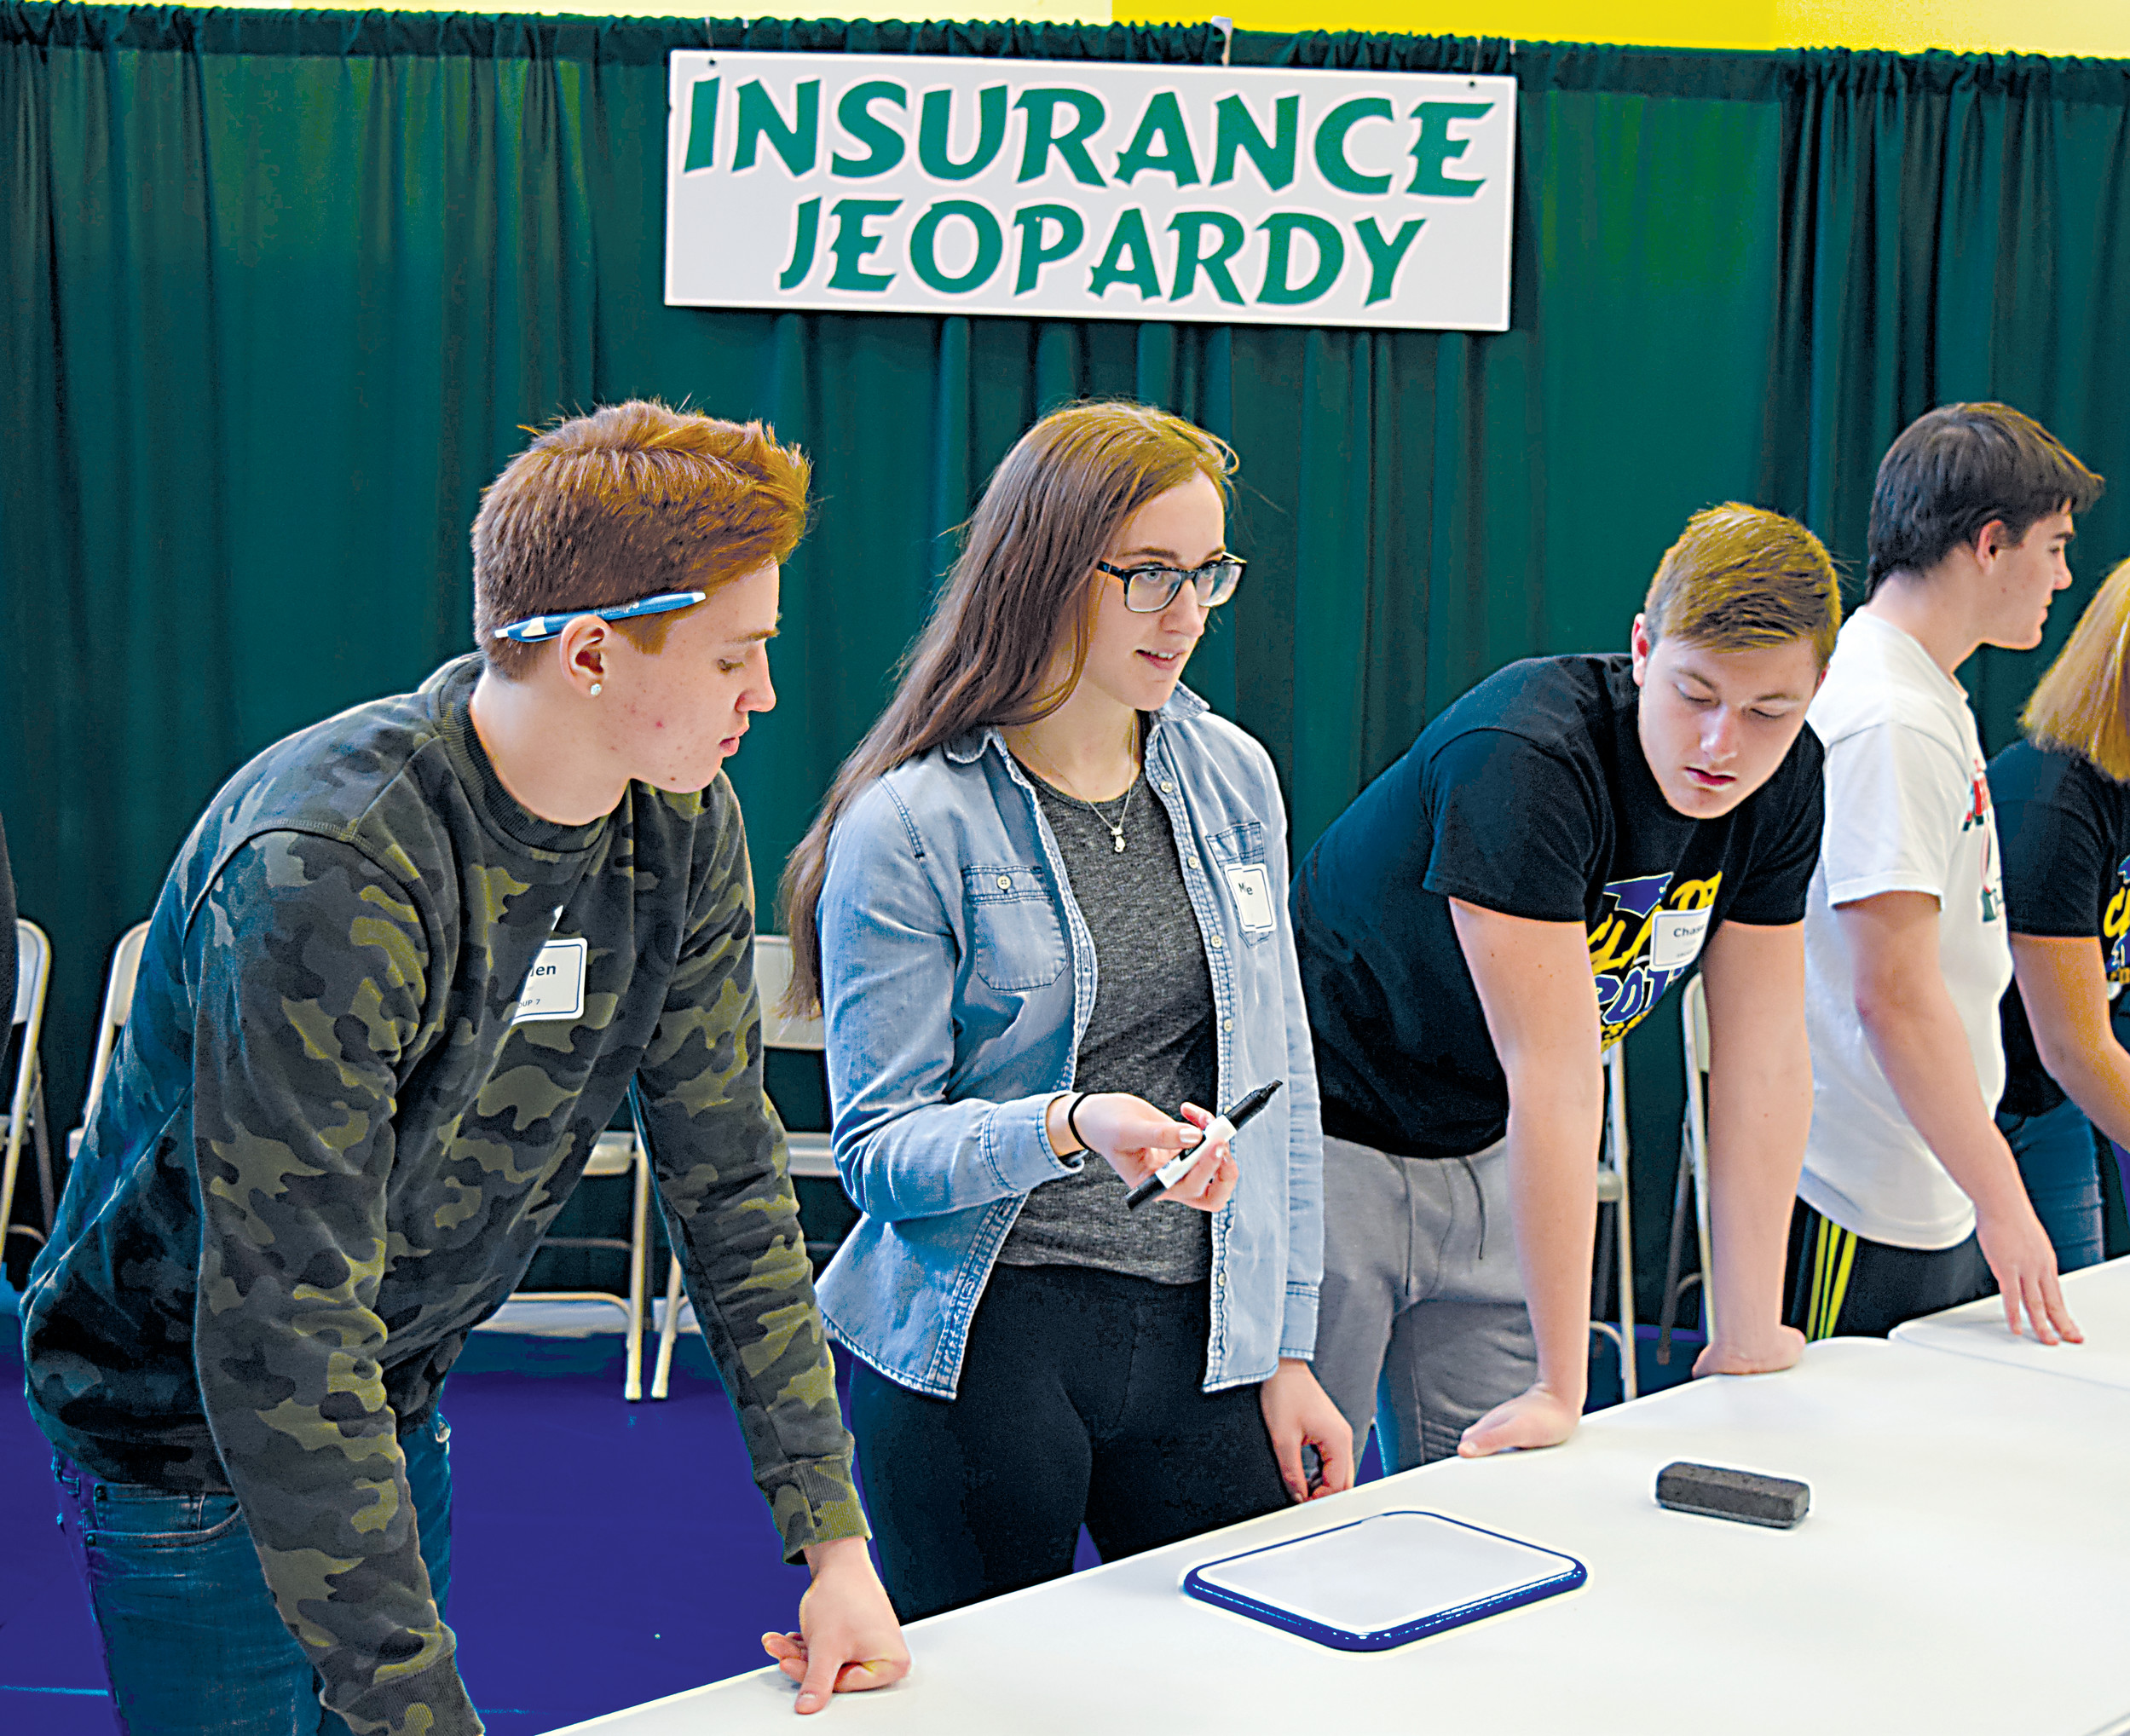 Braden Shetter, Michelle Shields and Chase Snavely play Insurance Jeopardy on Friday.